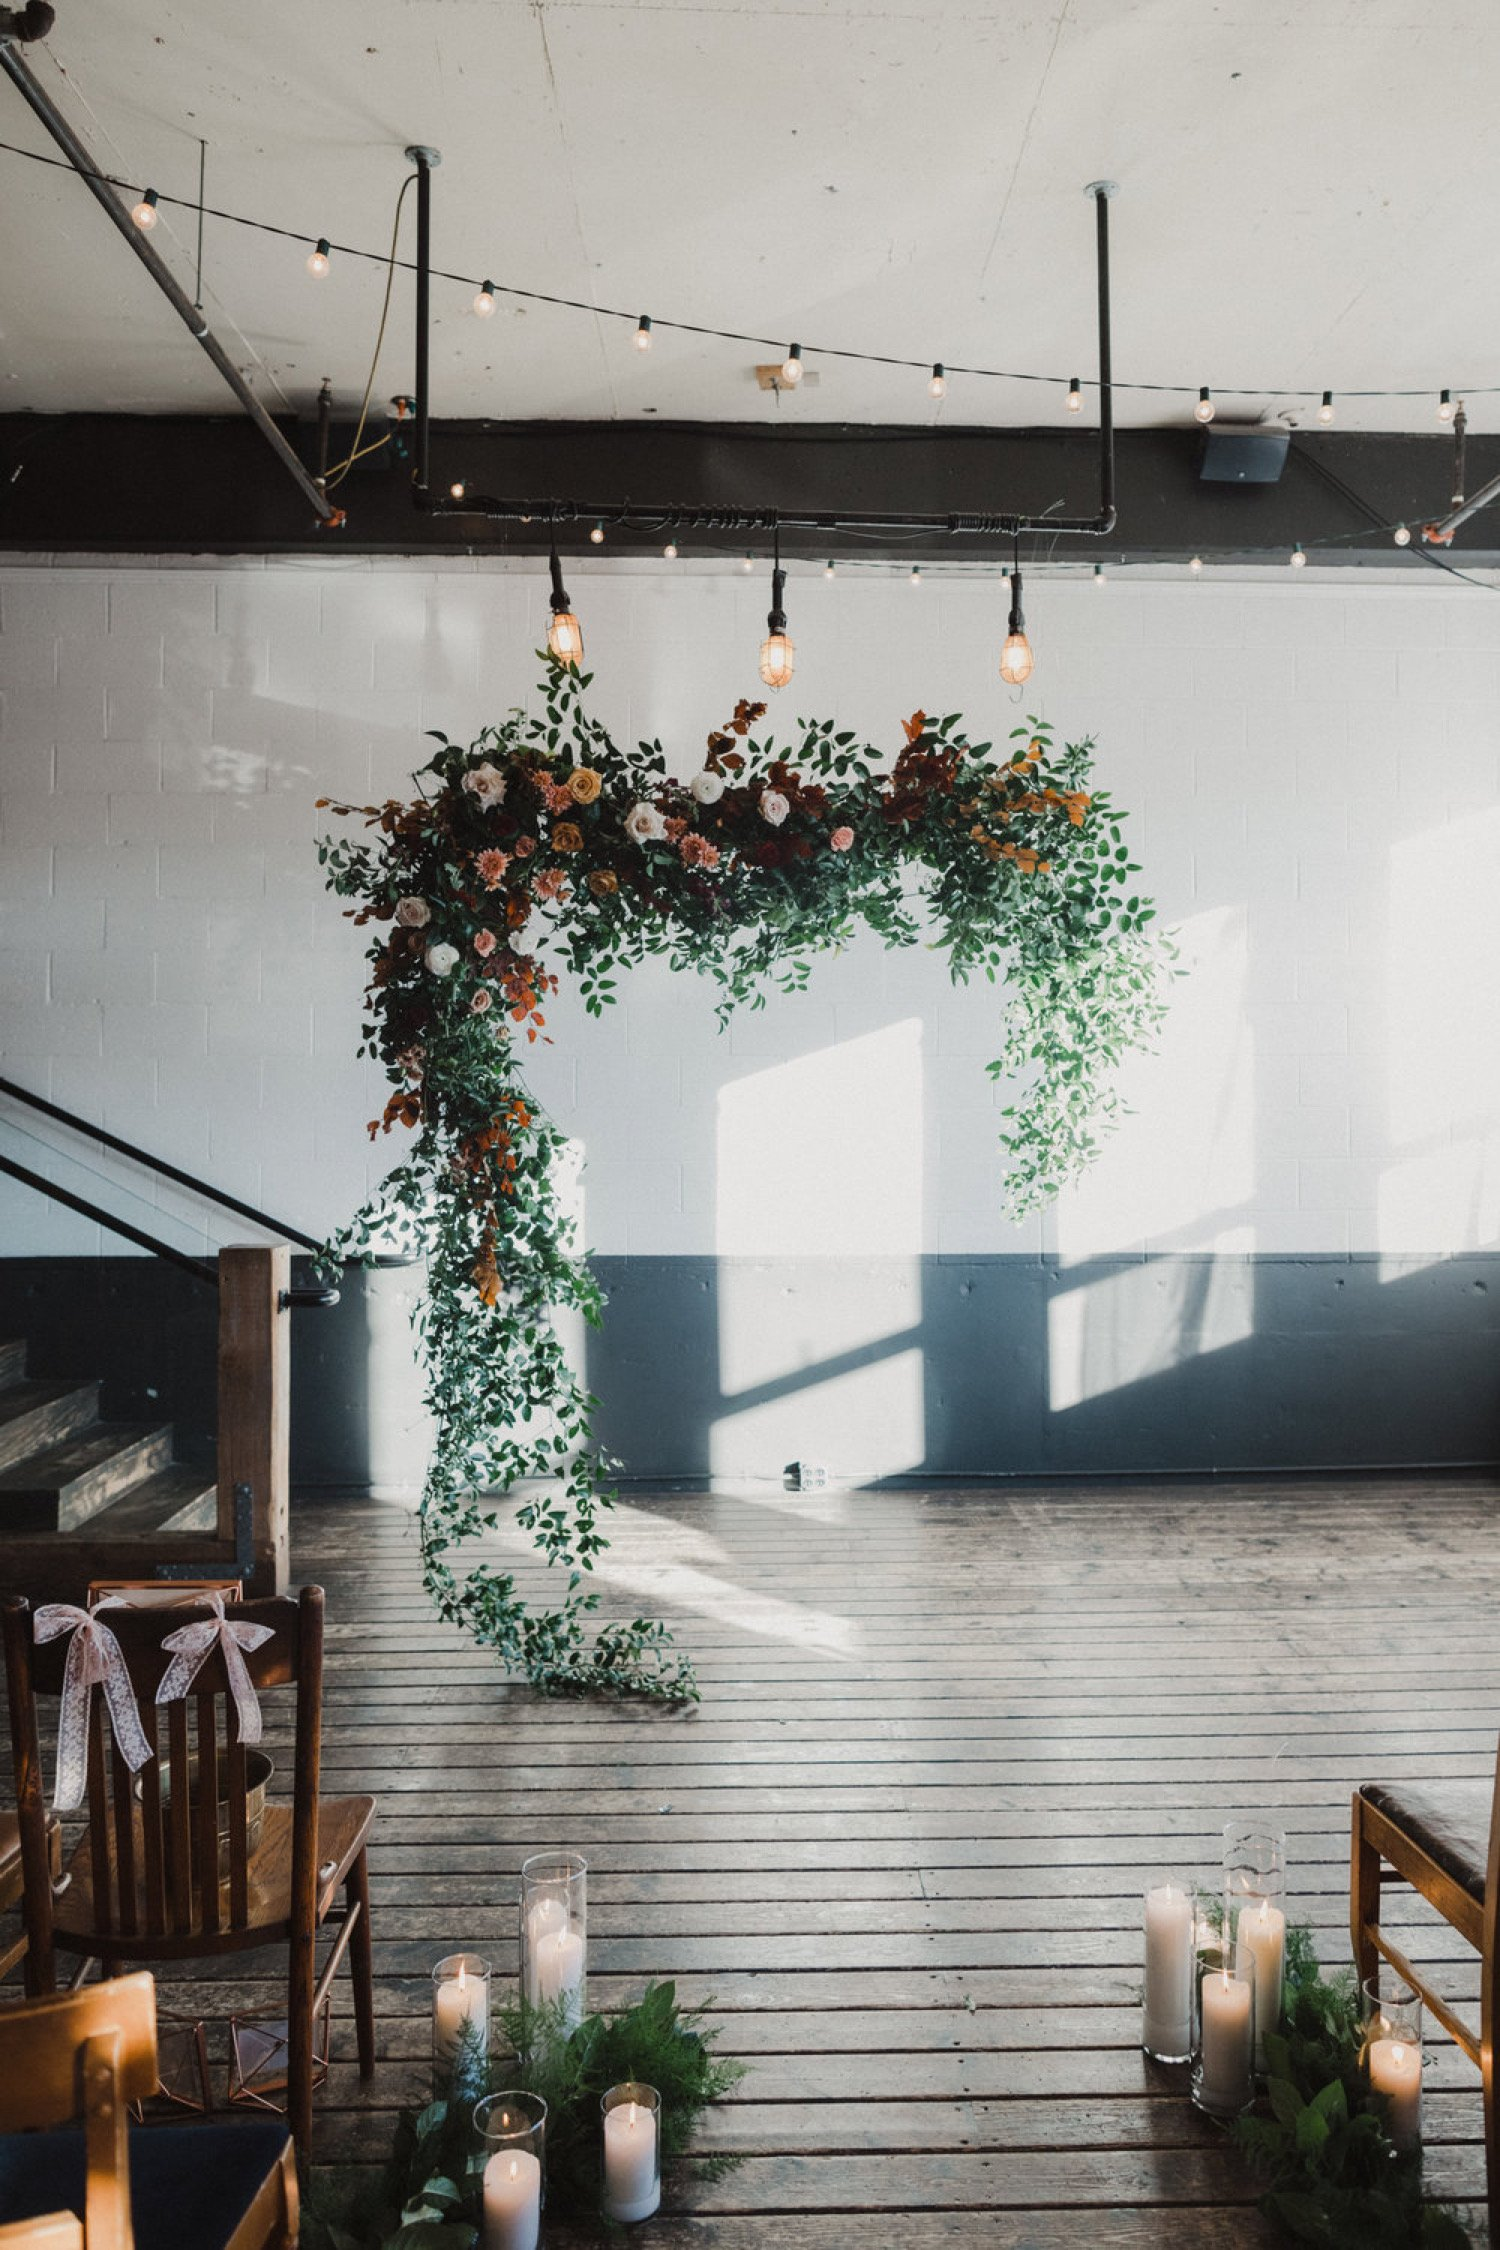 hanging floral installation with trailing greenery and roses.